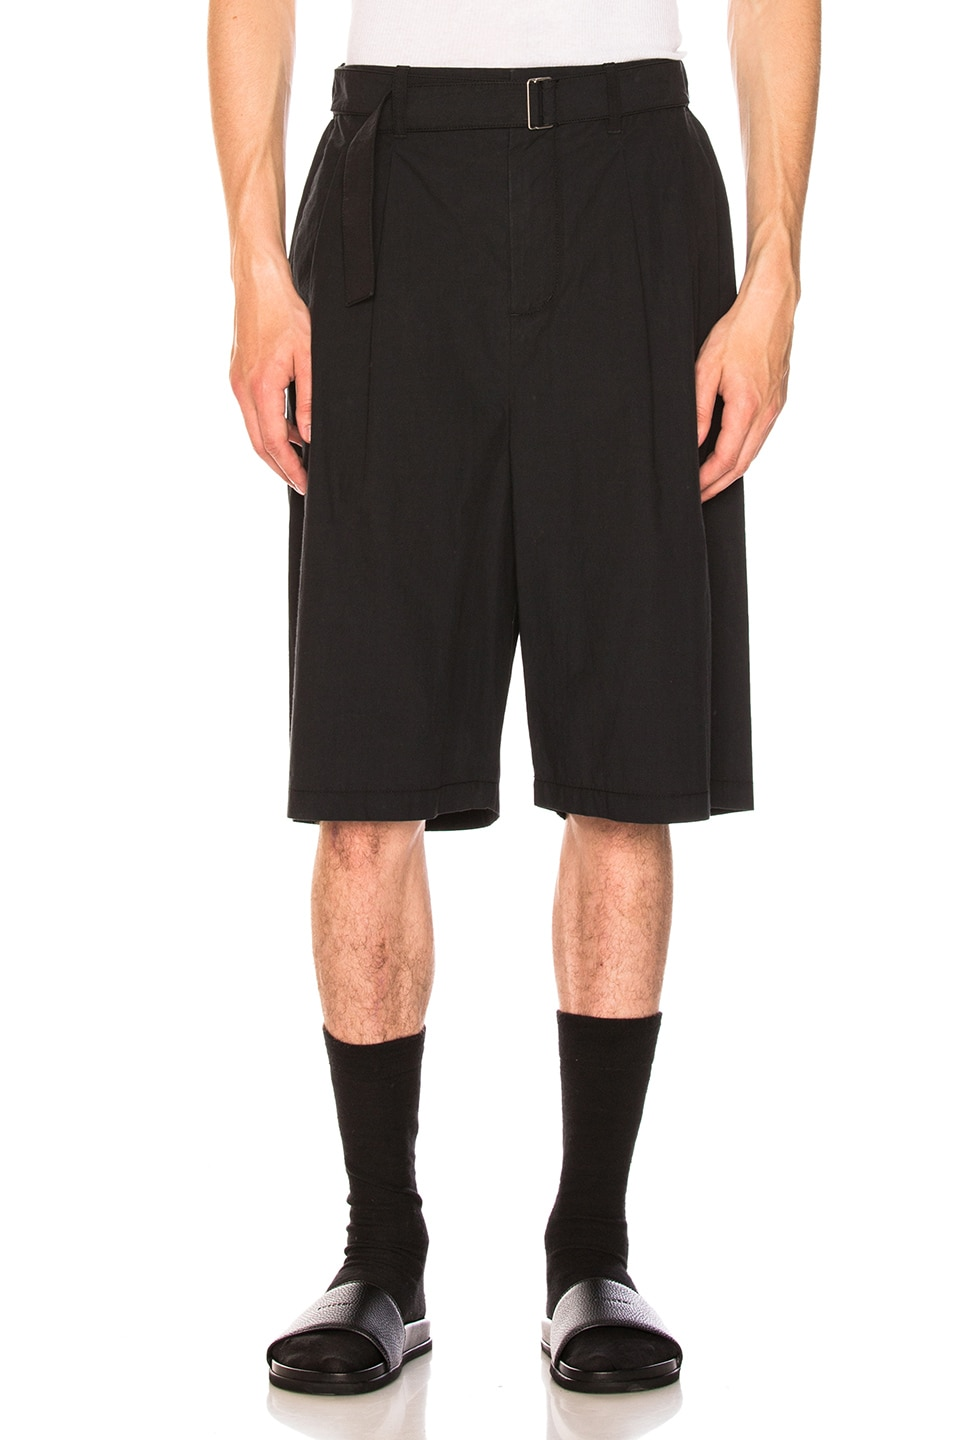 3.1 Phillip Lim  3.1 PHILLIP LIM RELAXED PLEATED SHORTS WITH BELT IN BLUE